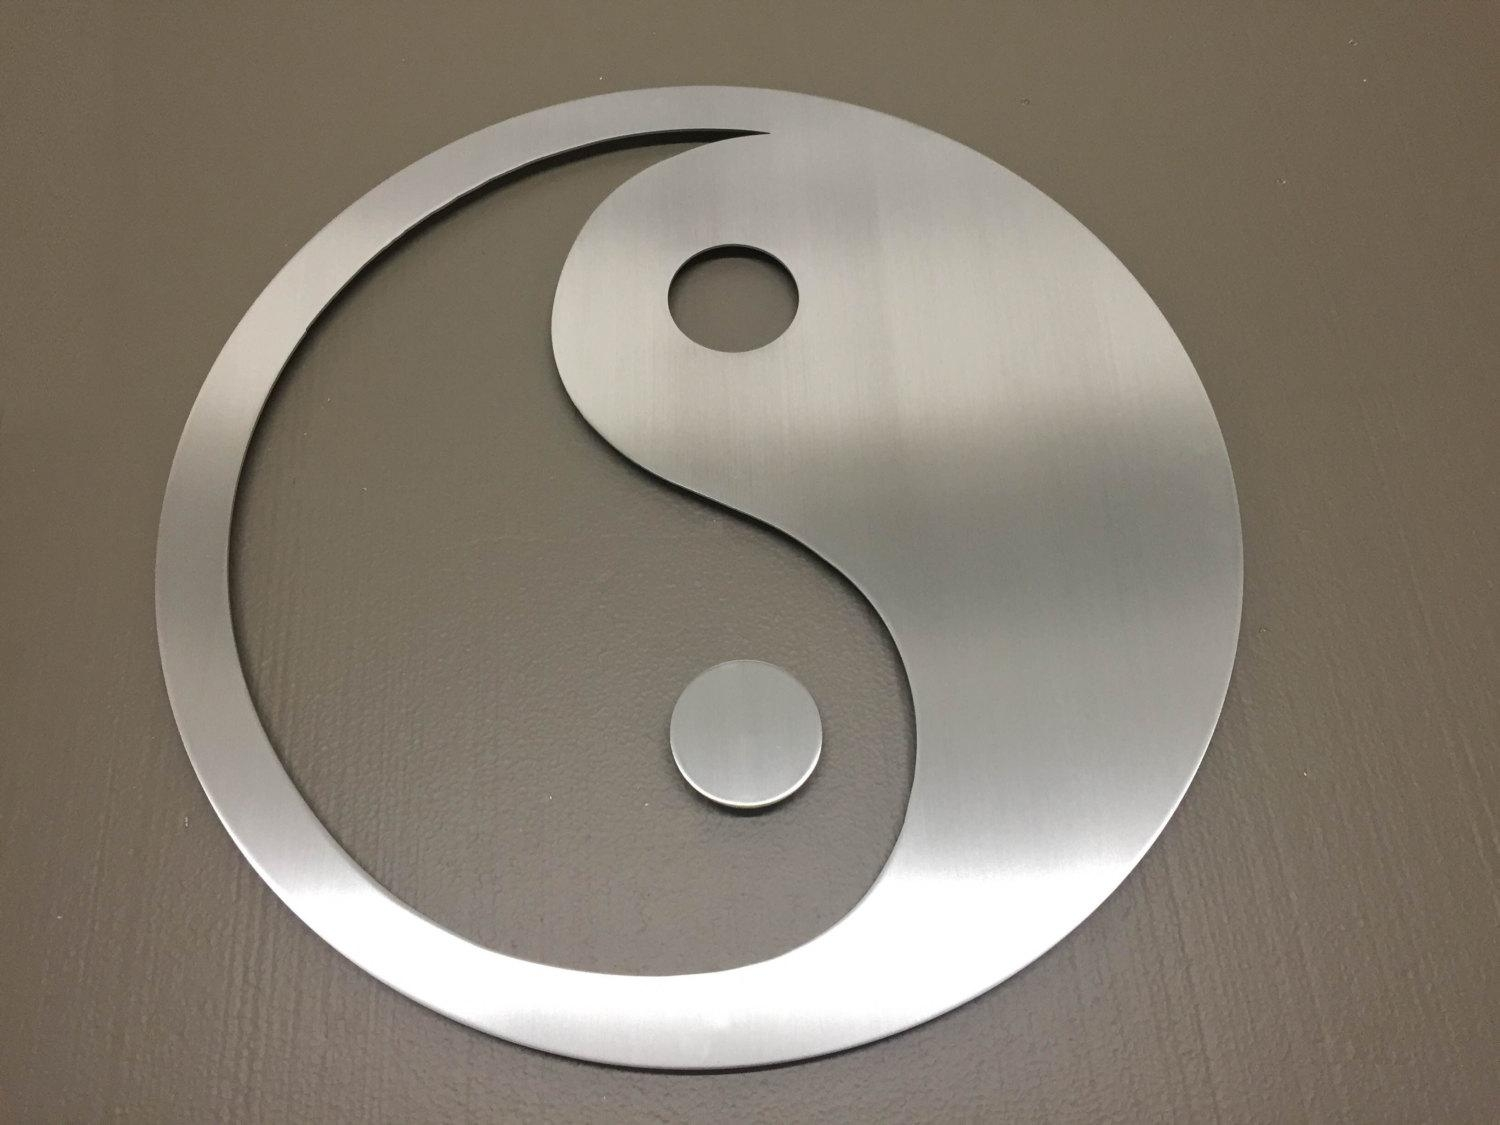 Yin Yang Metal Wall Art Wall Art Metal Wall Decor Metal Inside Yin Yang Wall Art (View 5 of 20)